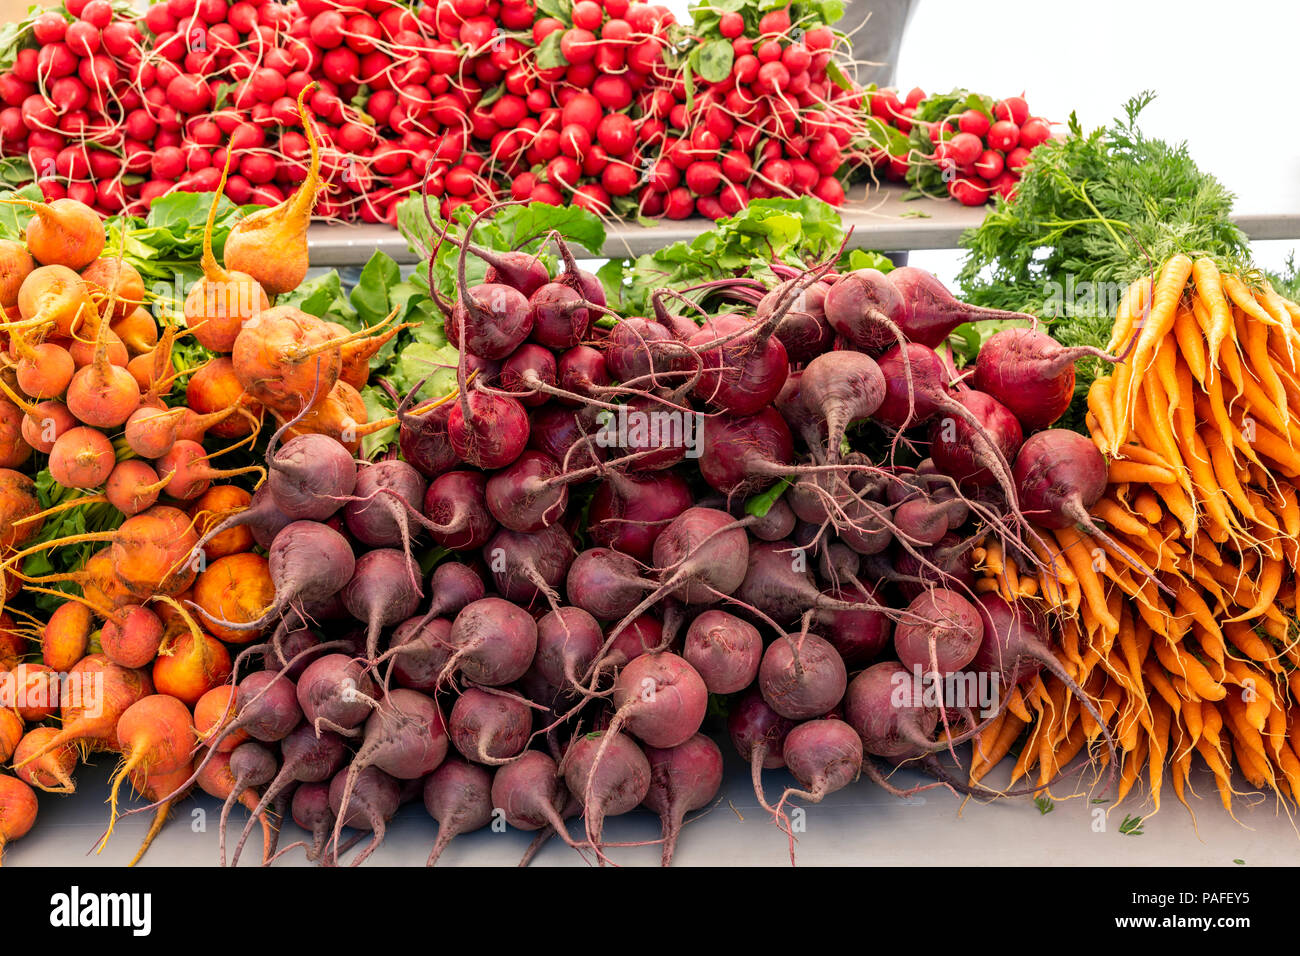 Vendors sell fresh vegetables, produce and other items at a seasonal farmers market in small mountain town of Salida, Colorado, USA - Stock Image